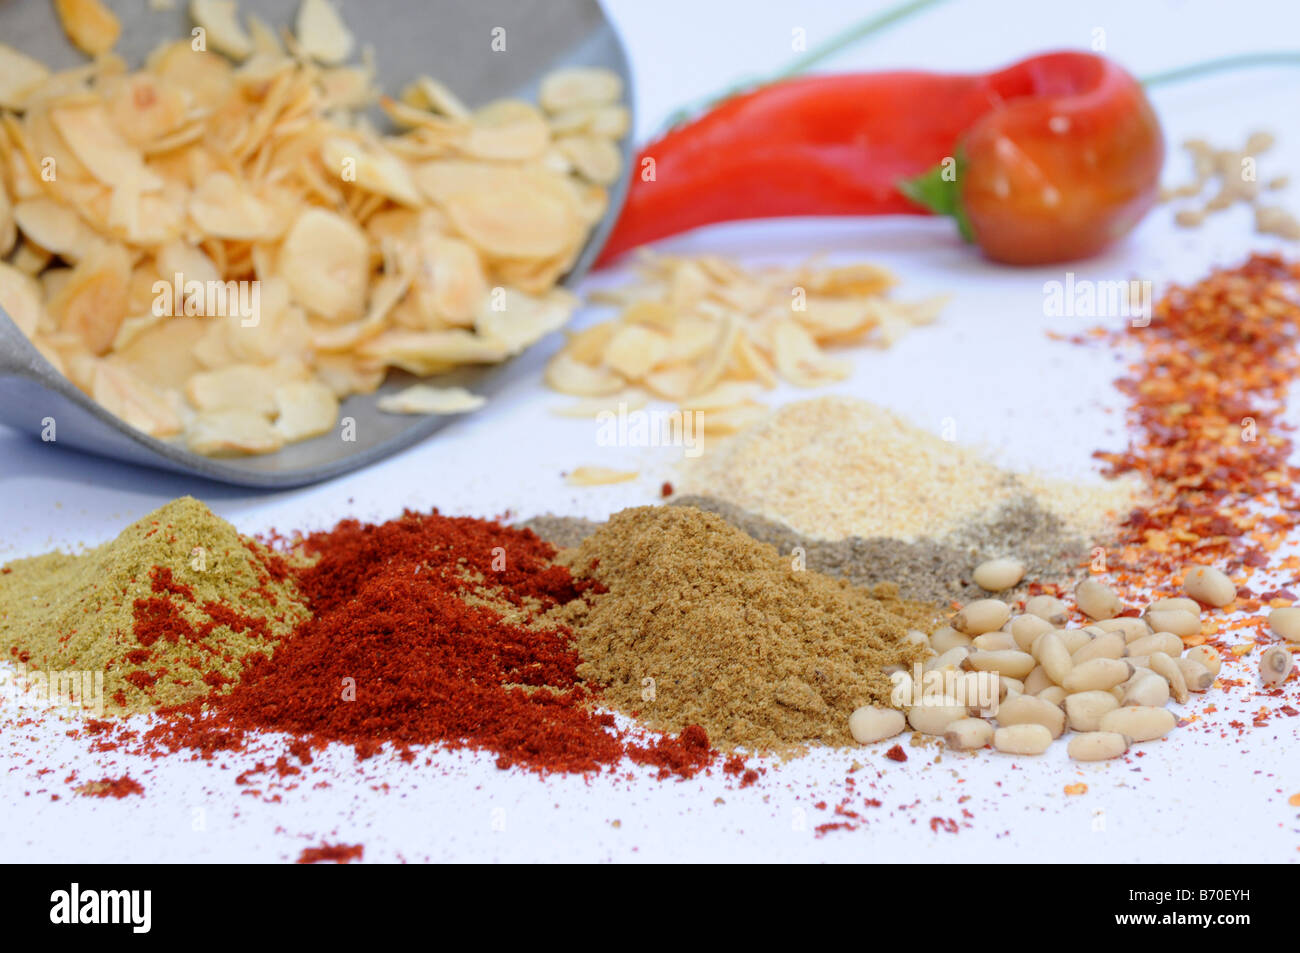 Still life of herbs and spices - Stock Image